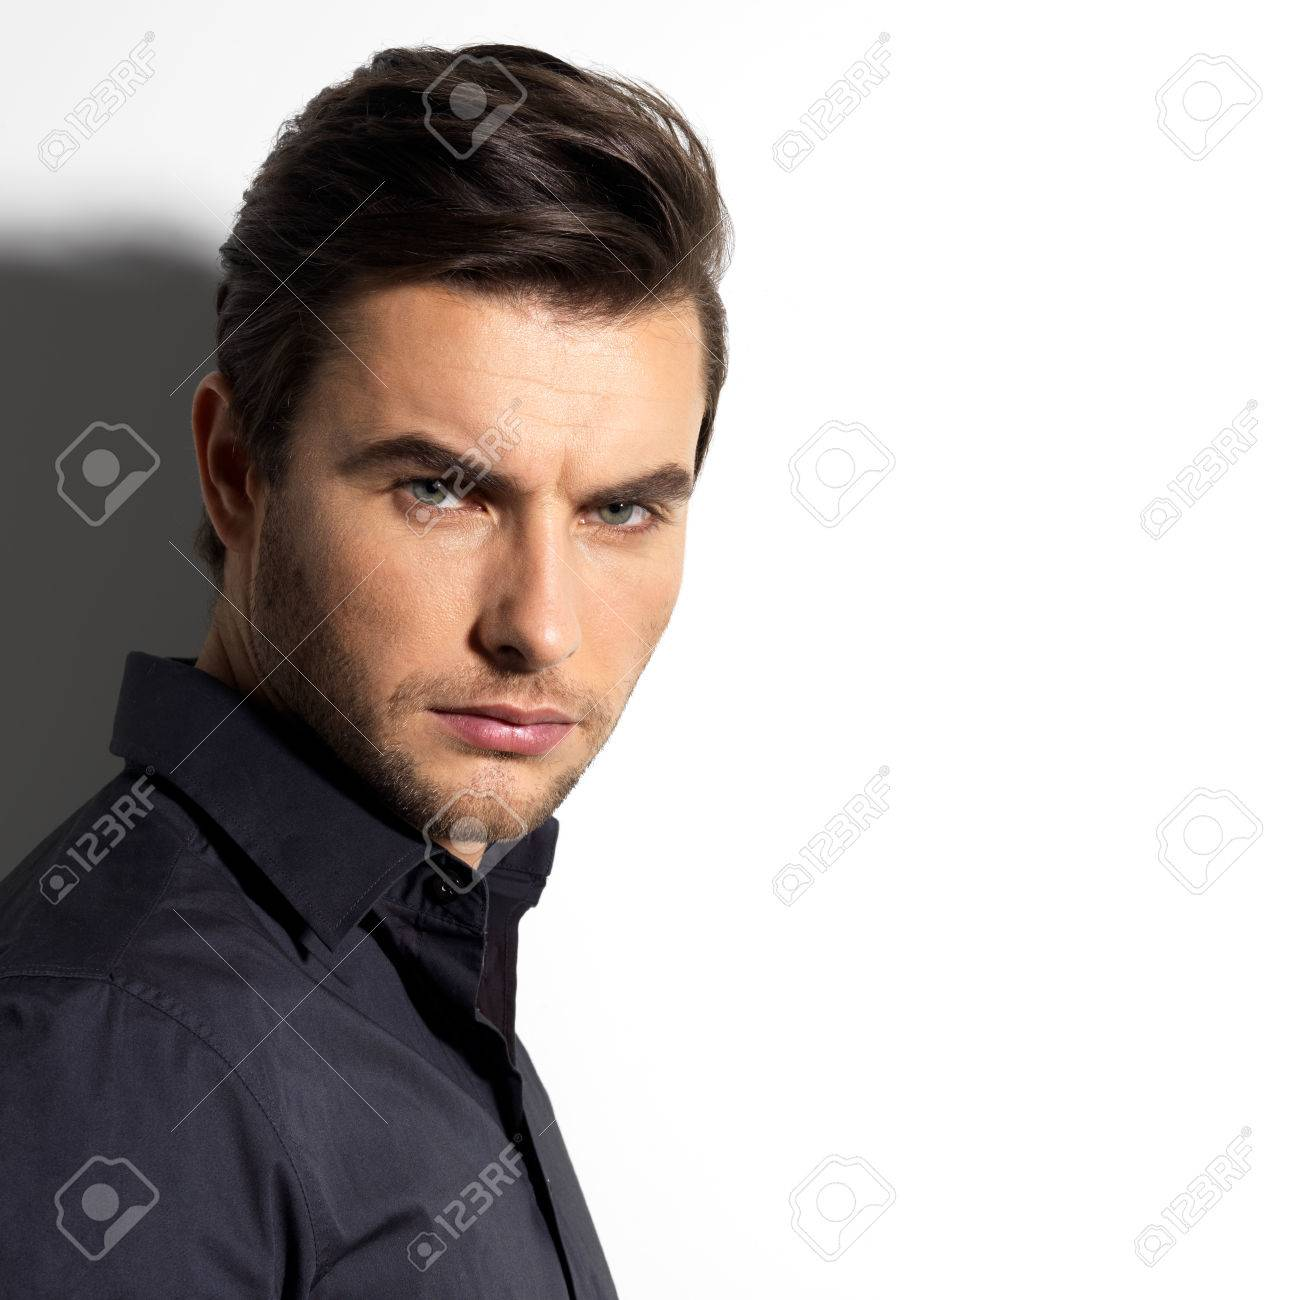 Fashion portrait of young man in black shirt poses over wall with contrast shadows Stock Photo - 23190293